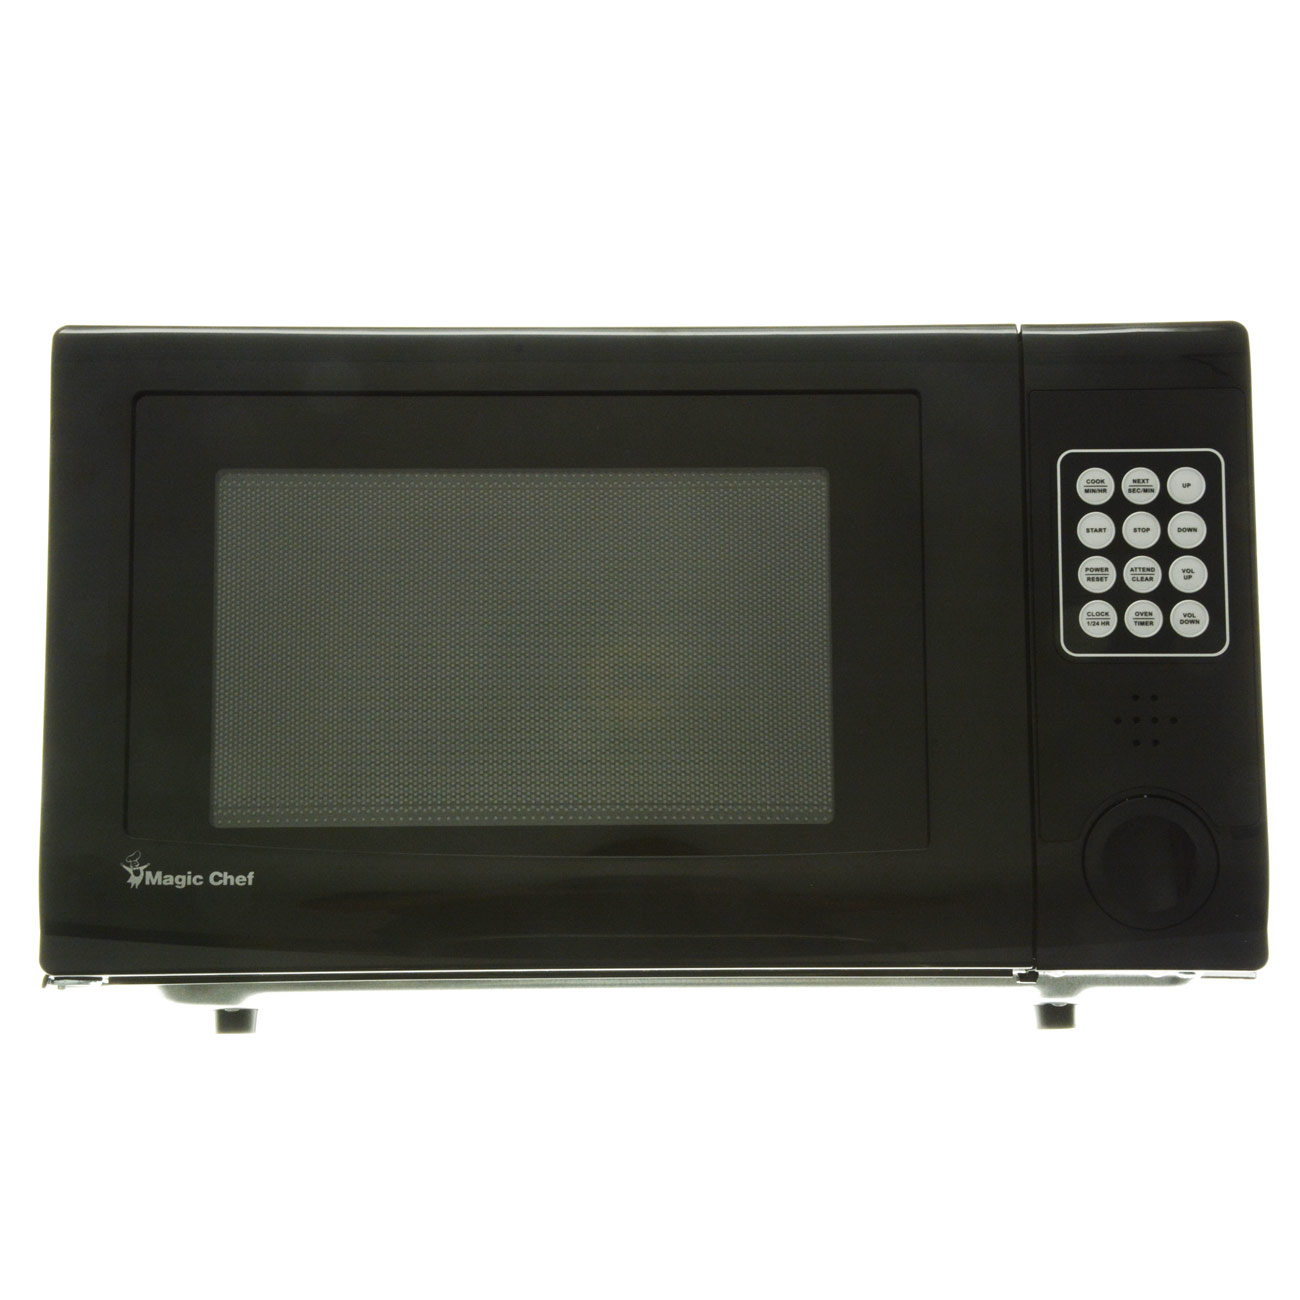 Talking Microwave Oven - Black